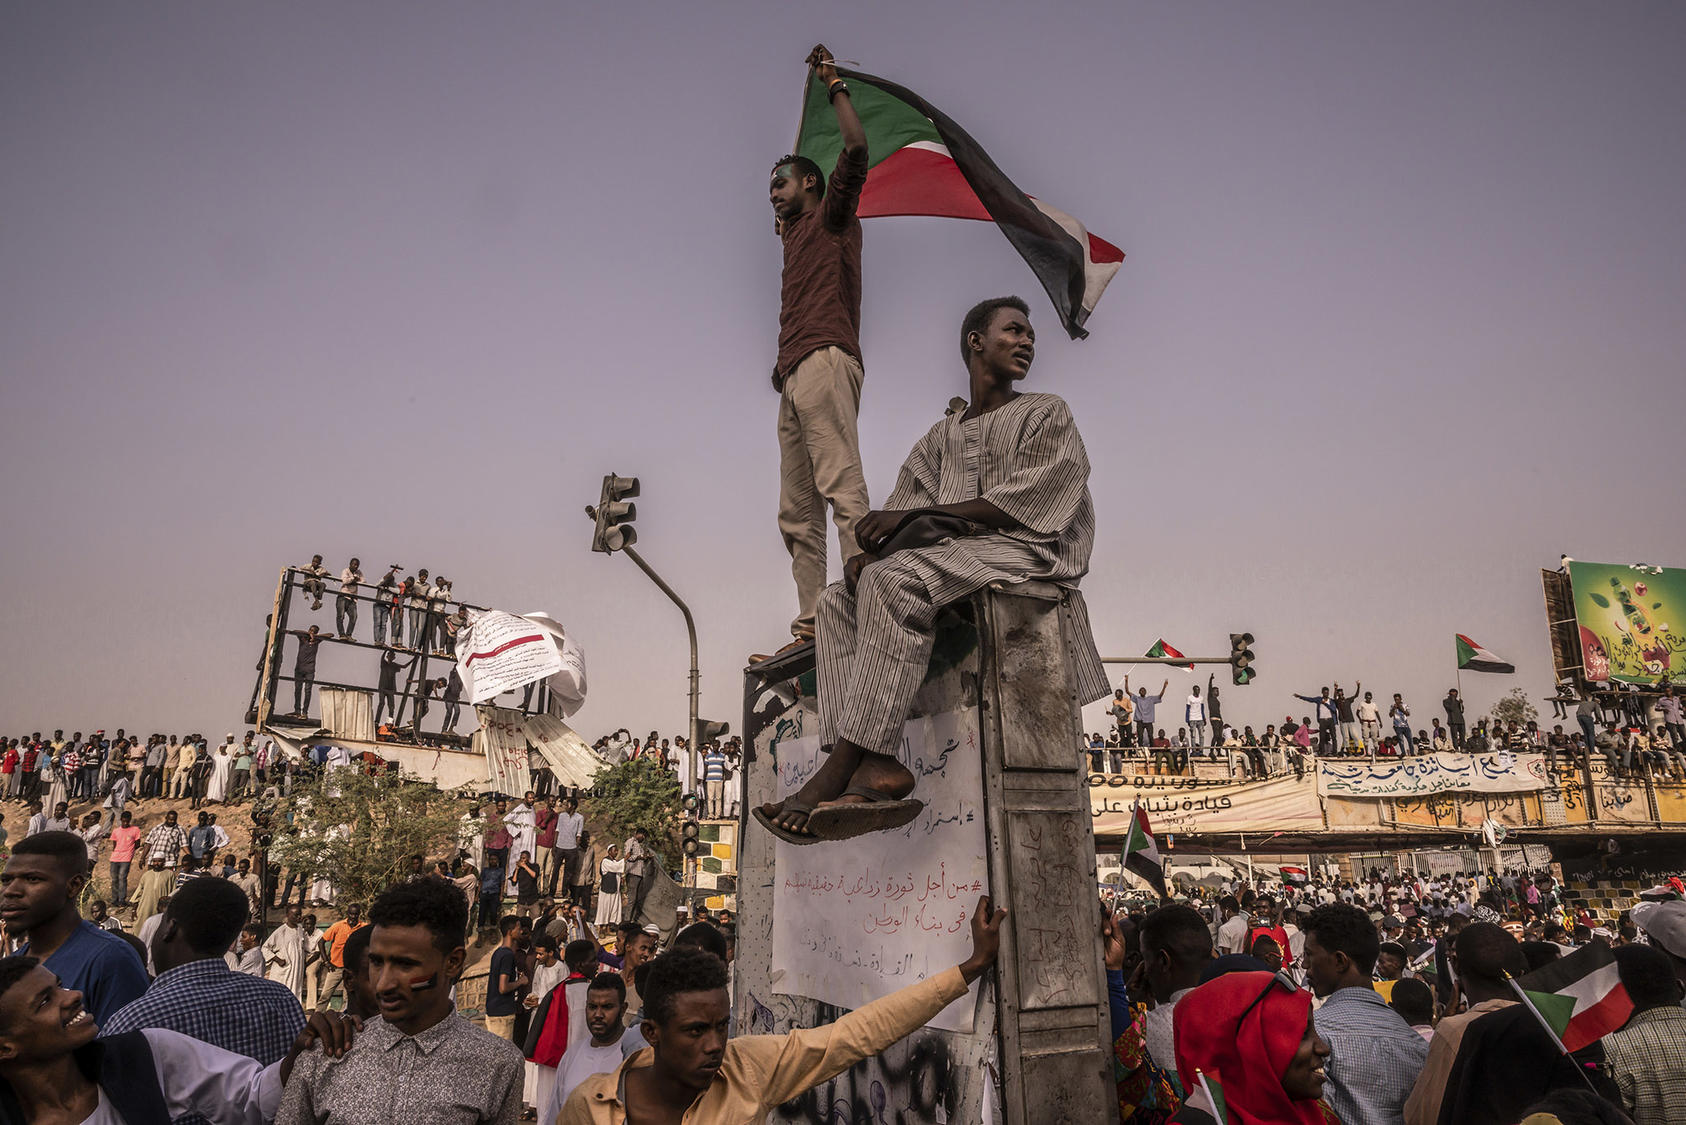 Protesters at the site of a sit-in outside the military headquarters in Khartoum, Sudan, April 19, 2019. (Bryan Denton/The New York Times)